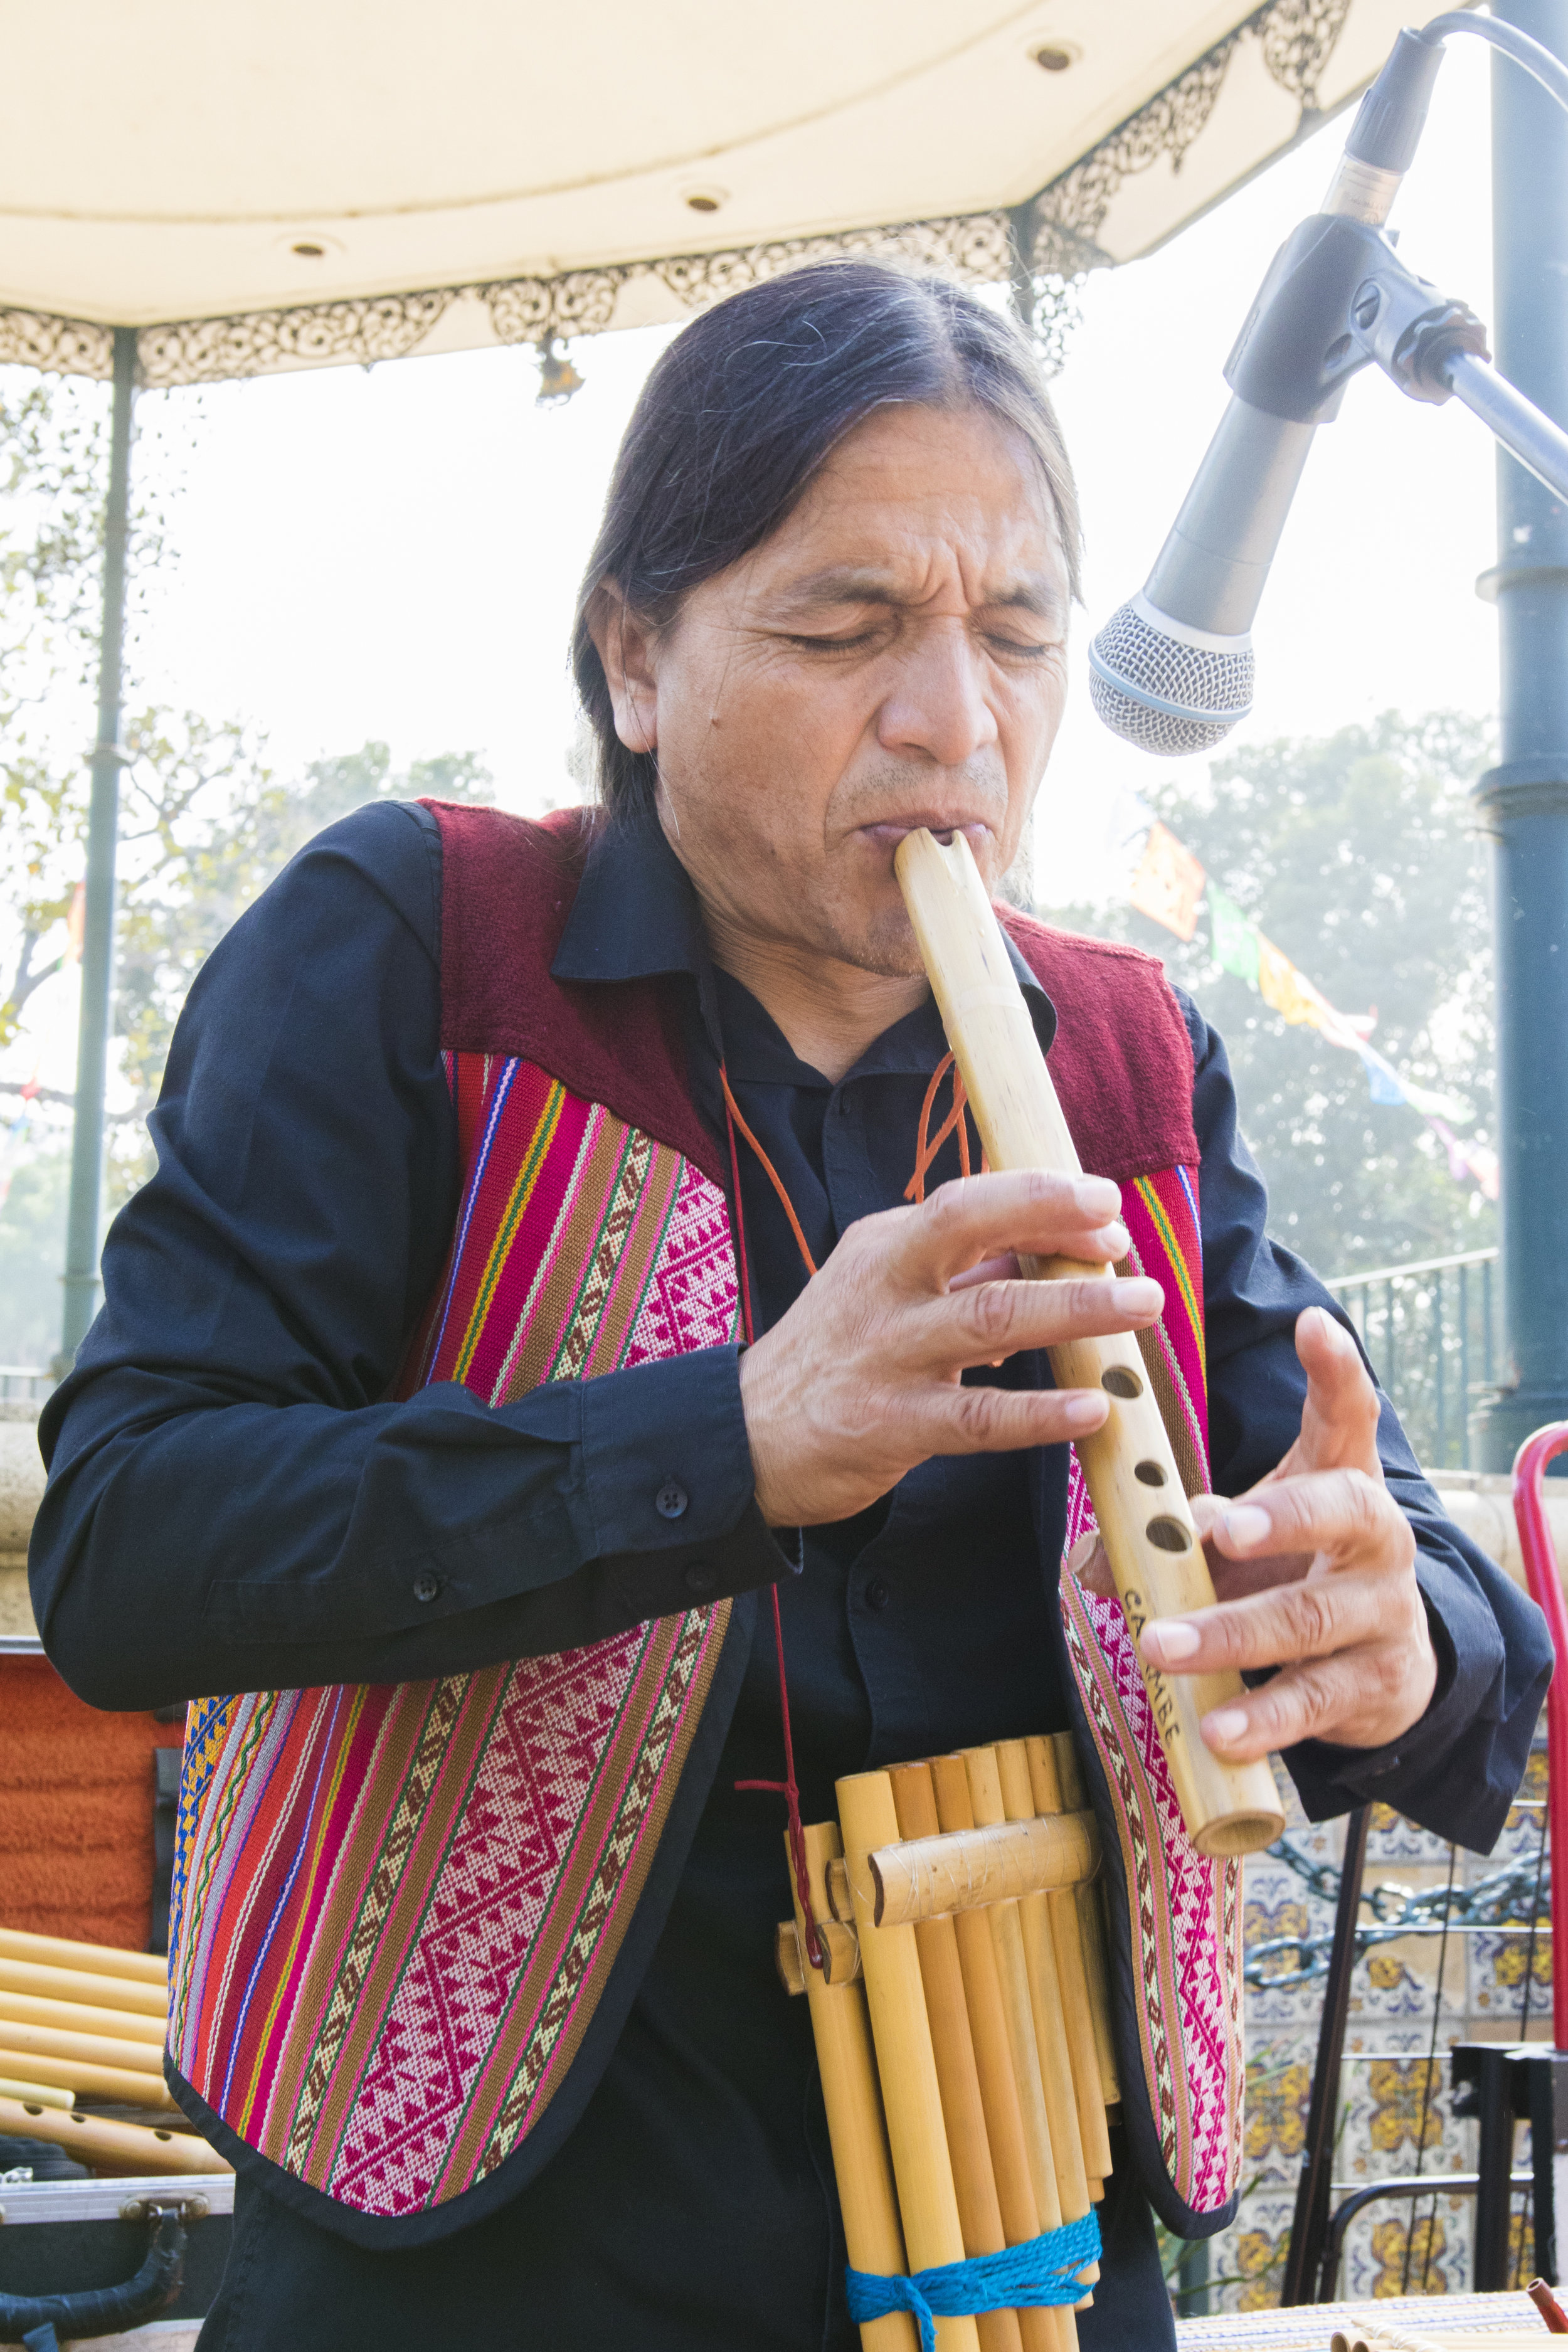 """Jonh Mosquera also known as """"Cayambe the Man from the Andes"""" performs one of his originally composed songs to a small crowd on Olvera Street on October 29, 2018. Jonh has been selling his CD's on Olvera Street since the 1990's and has seen a dramatic decline in sales in recent years. However, he does not mind, because he makes music to be happy. It is not about the money for him. (Zane Meyer-Thornton/Corsair Photo)"""